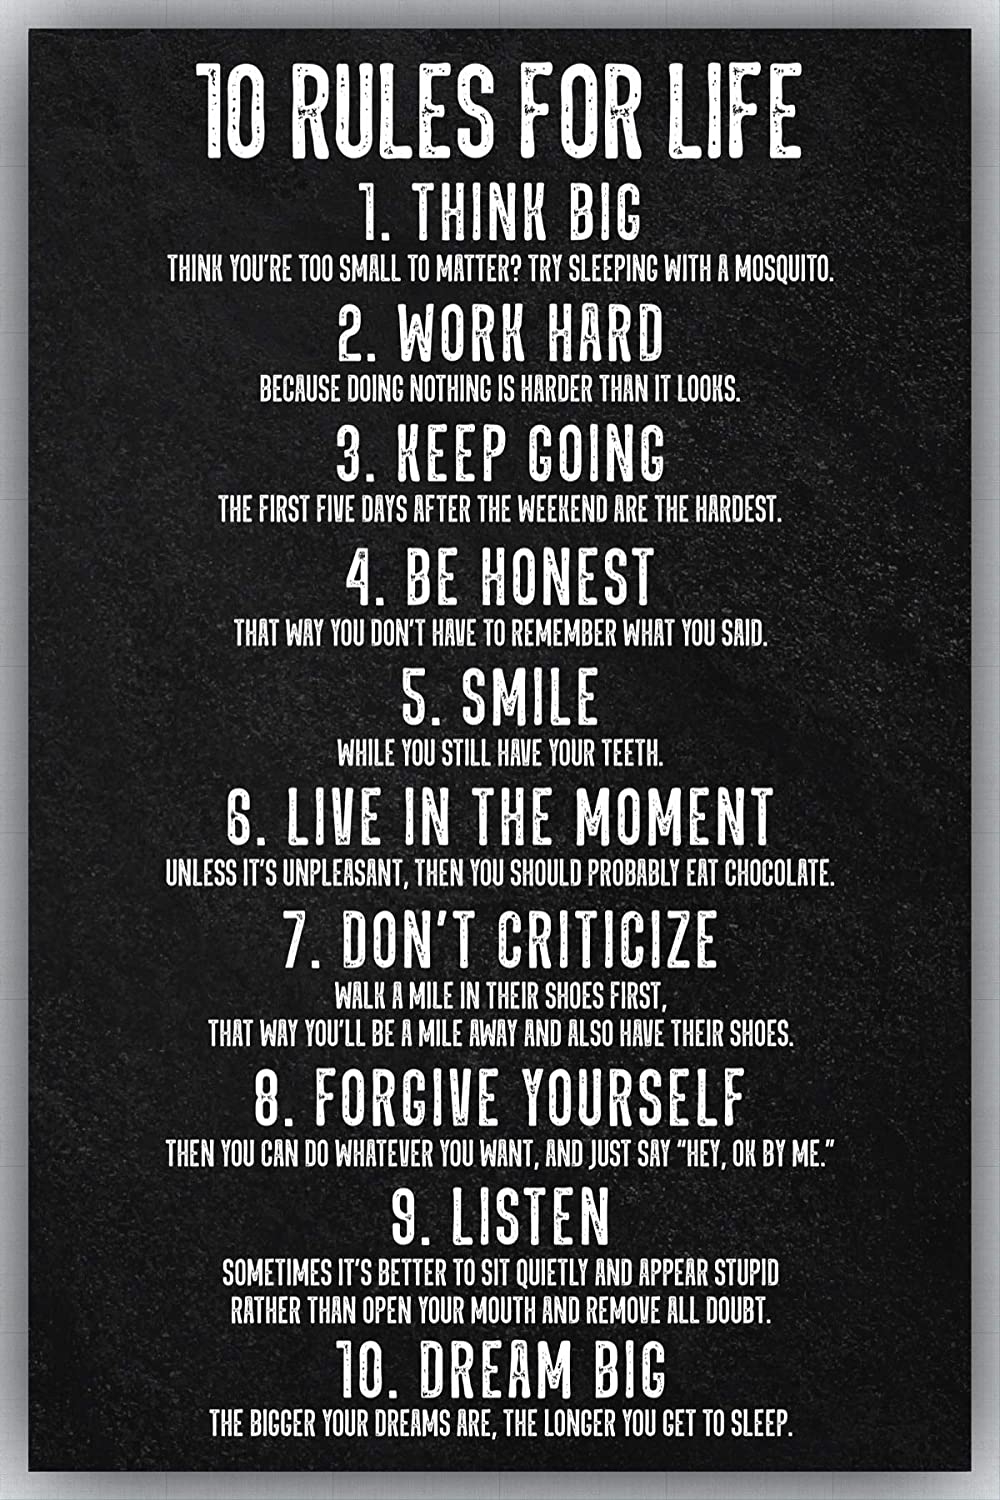 10 Rules for Life Funny & Inspirational Wall Art | 11x17 Motivational Poster for Home, Bedroom, Office, Gym, Classroom Décor, or Any Room | Set 3